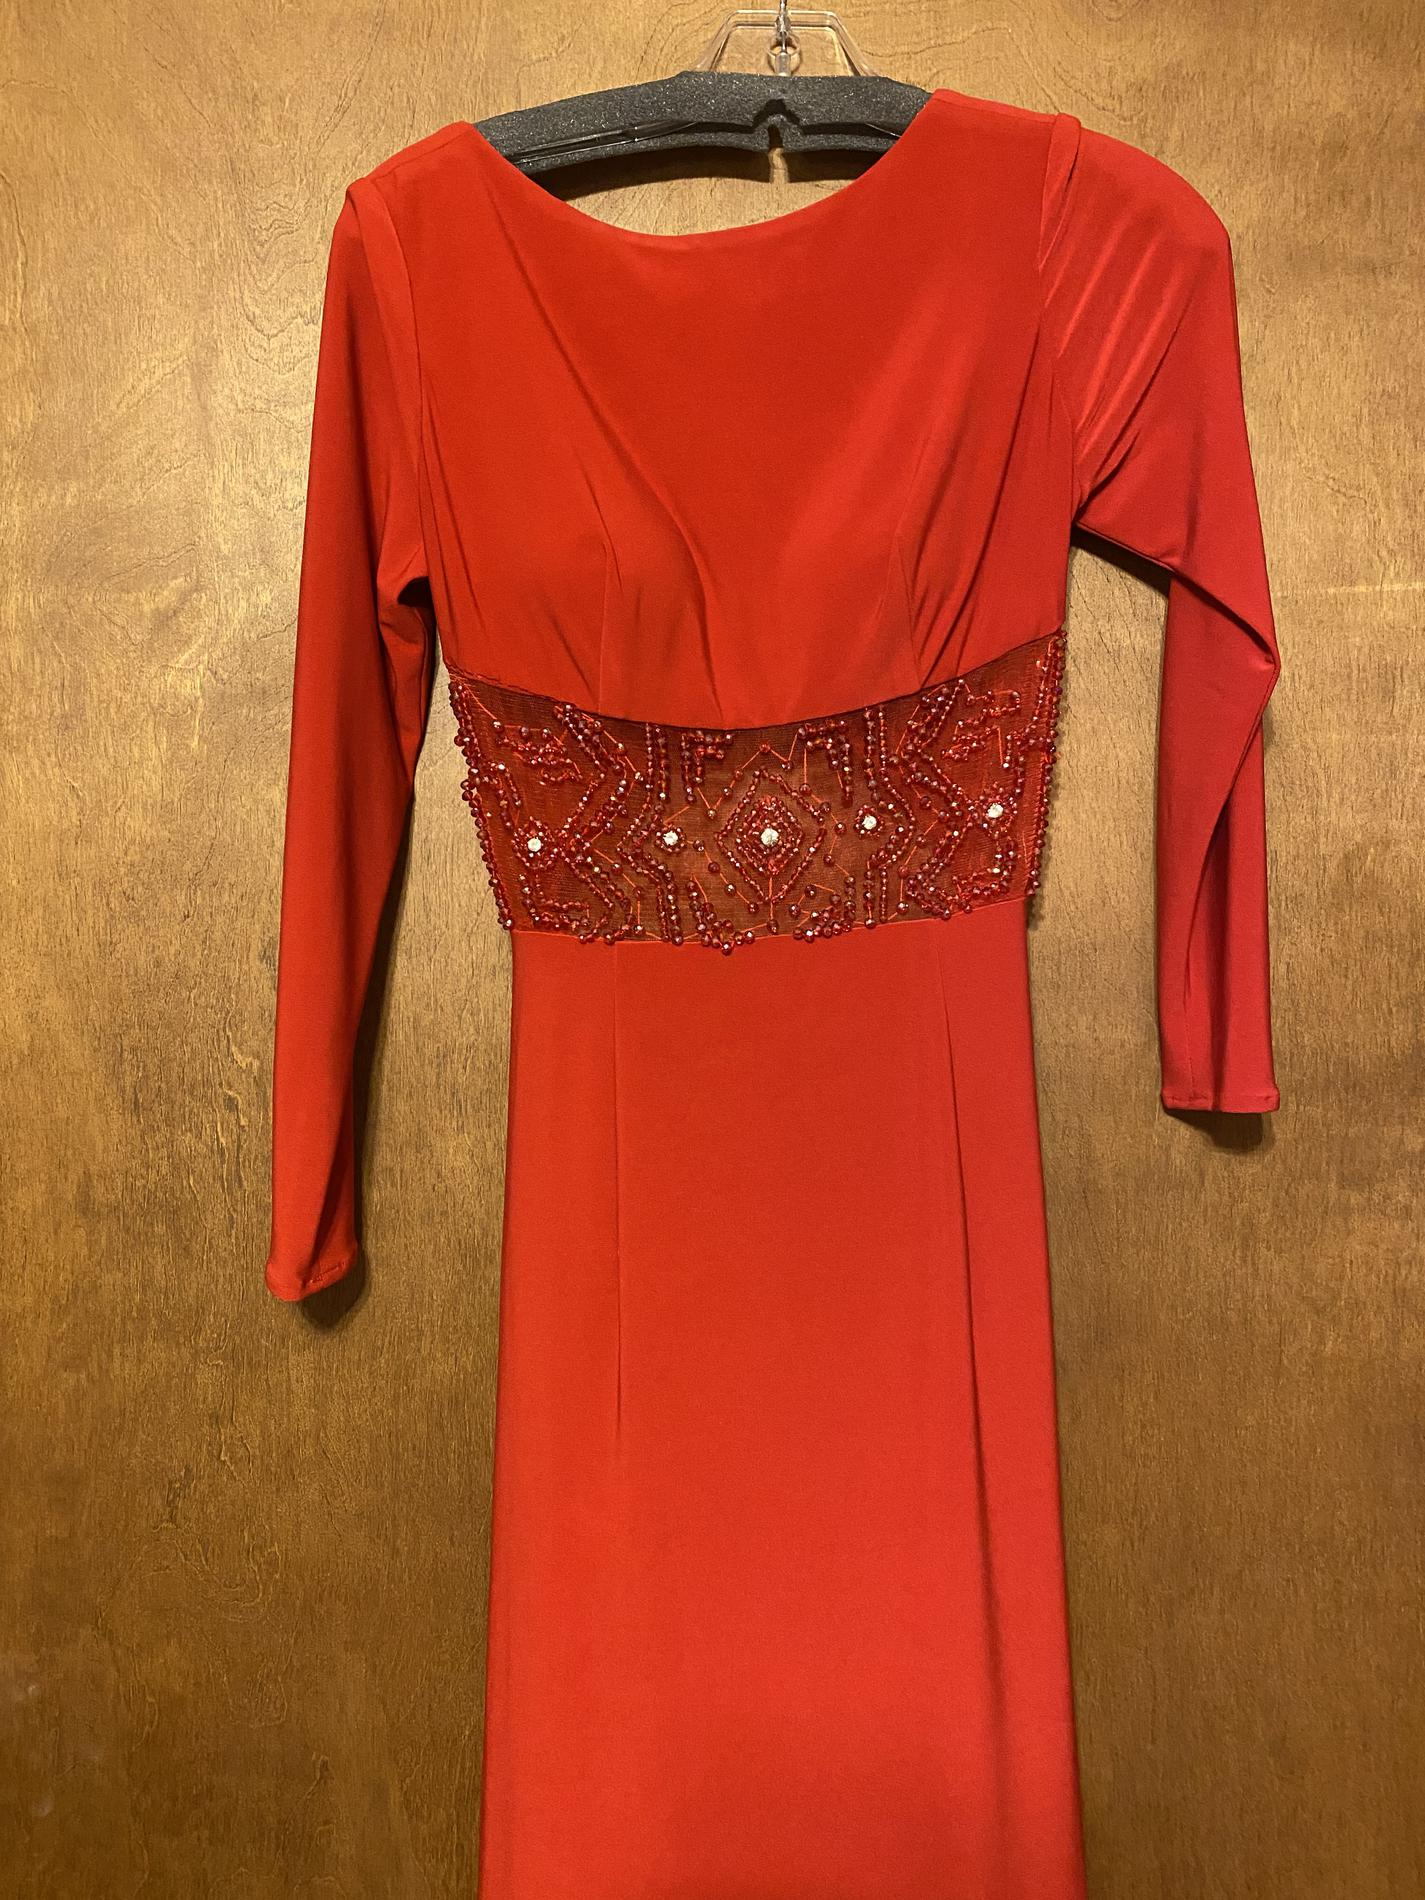 Sherri Hill Red Size 4 Pageant Short Height Backless Sheer Straight Dress on Queenly